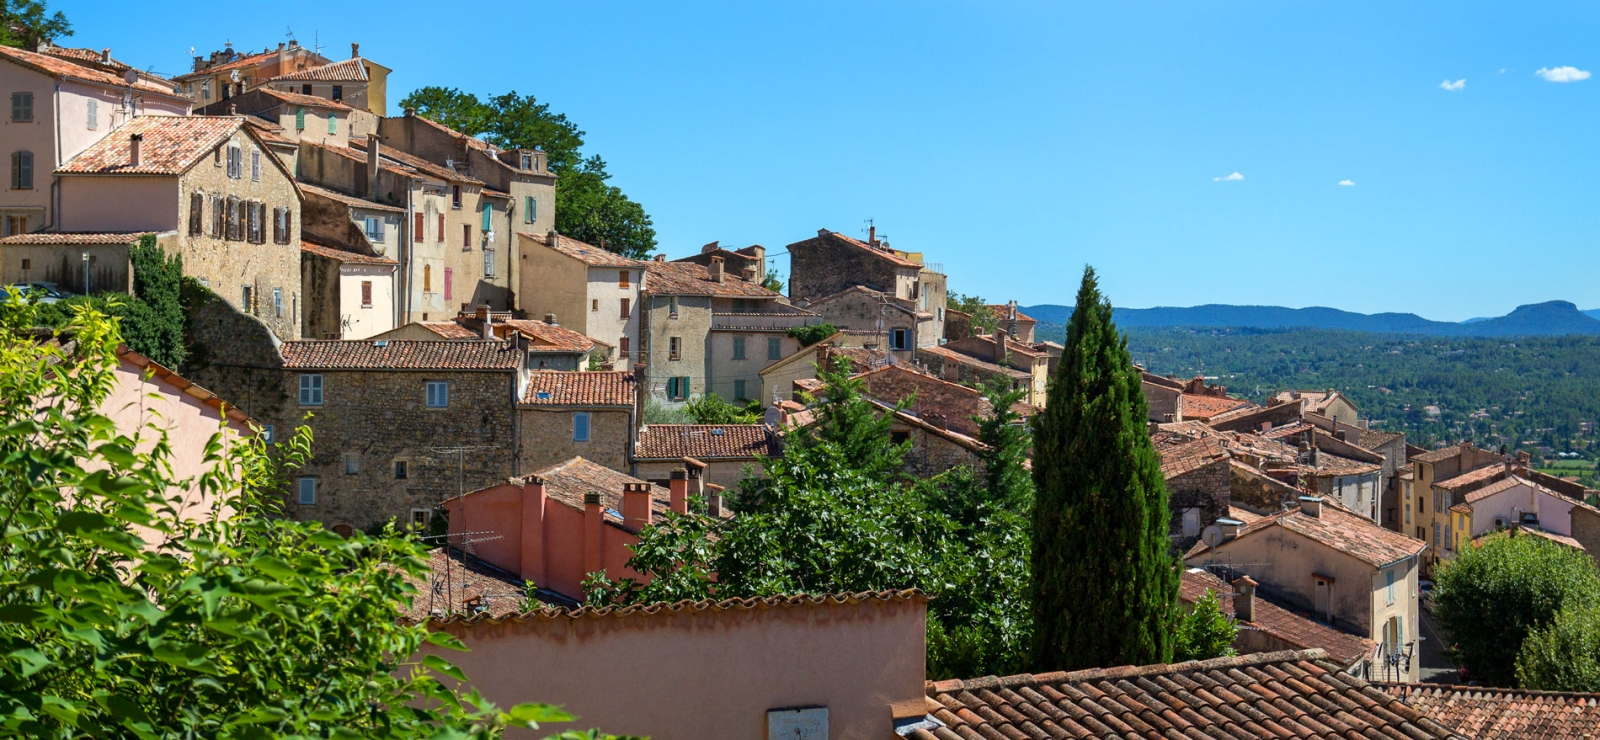 villages du pays de fayence